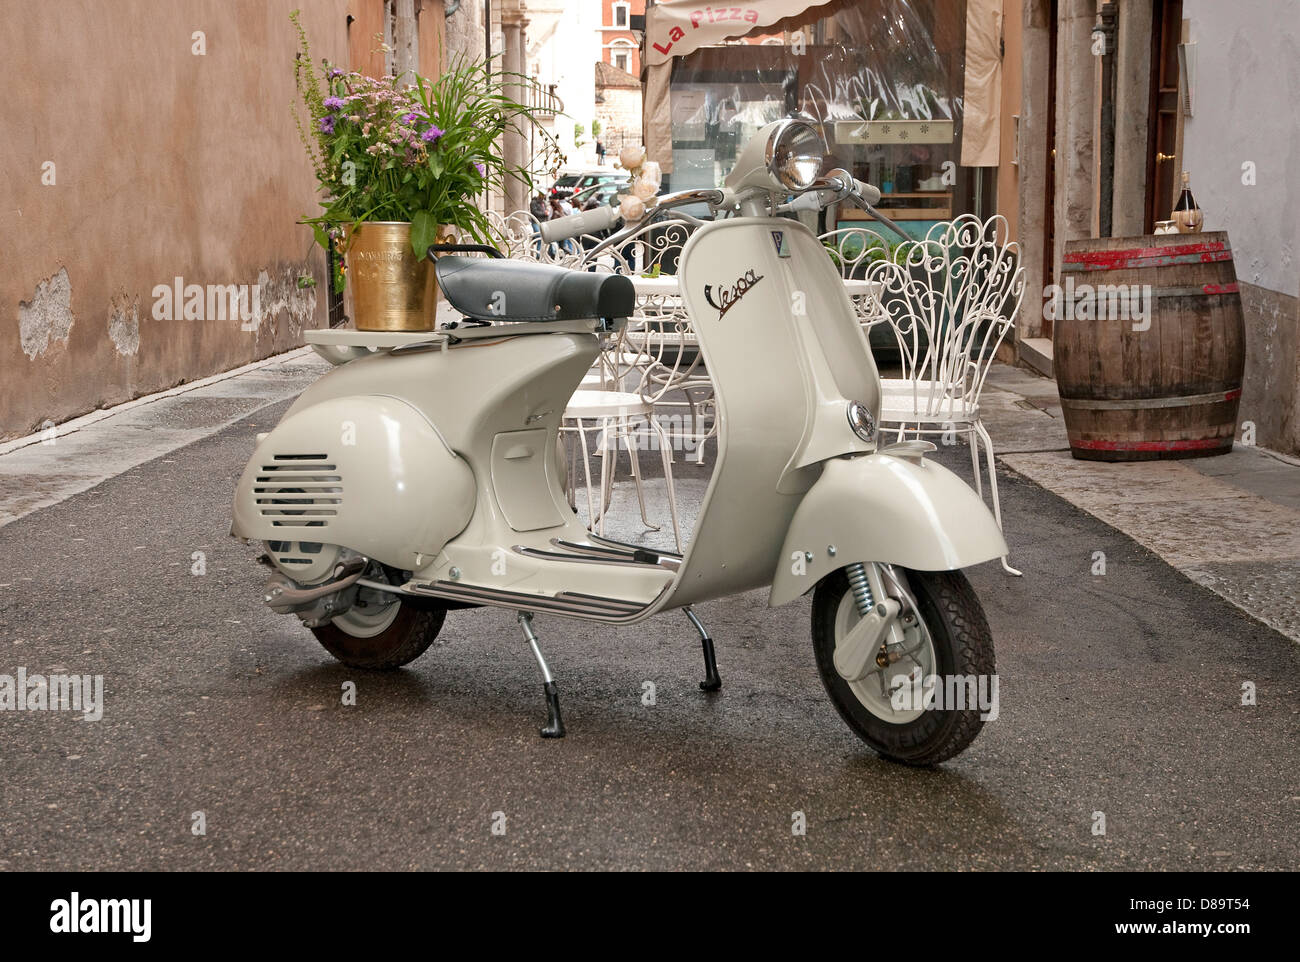 Classic Vespa High Resolution Stock Photography And Images Alamy